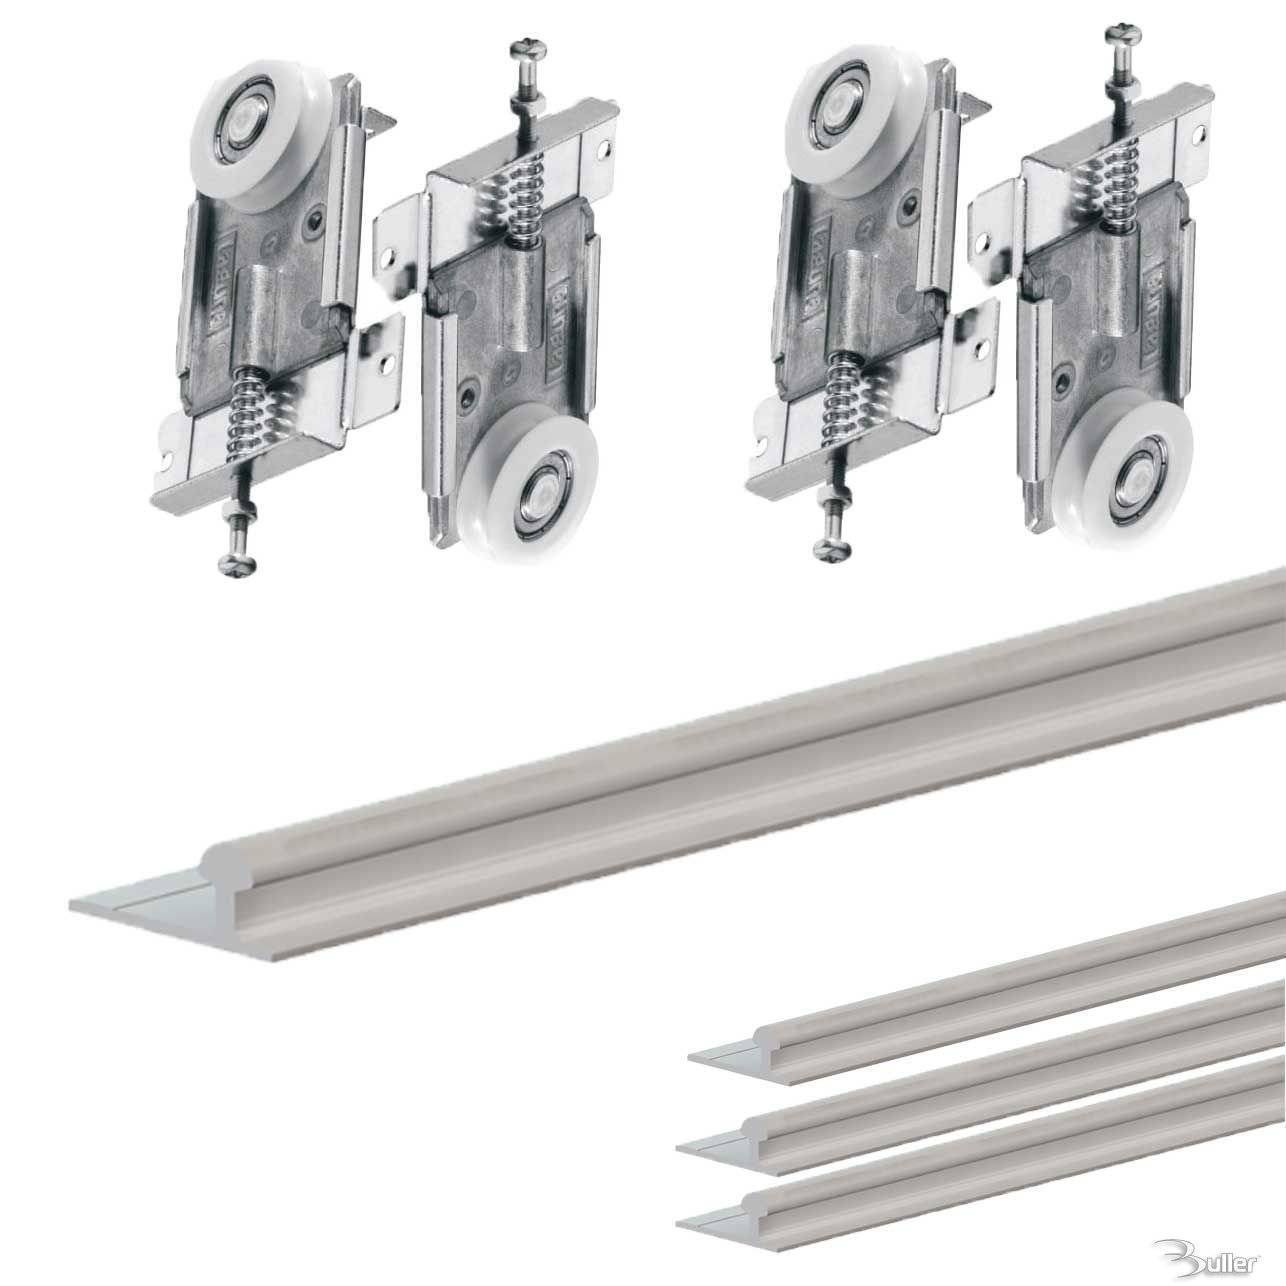 Wardrobe Kits Fastor Sliding Door Gear Wardrobe Track Kit System